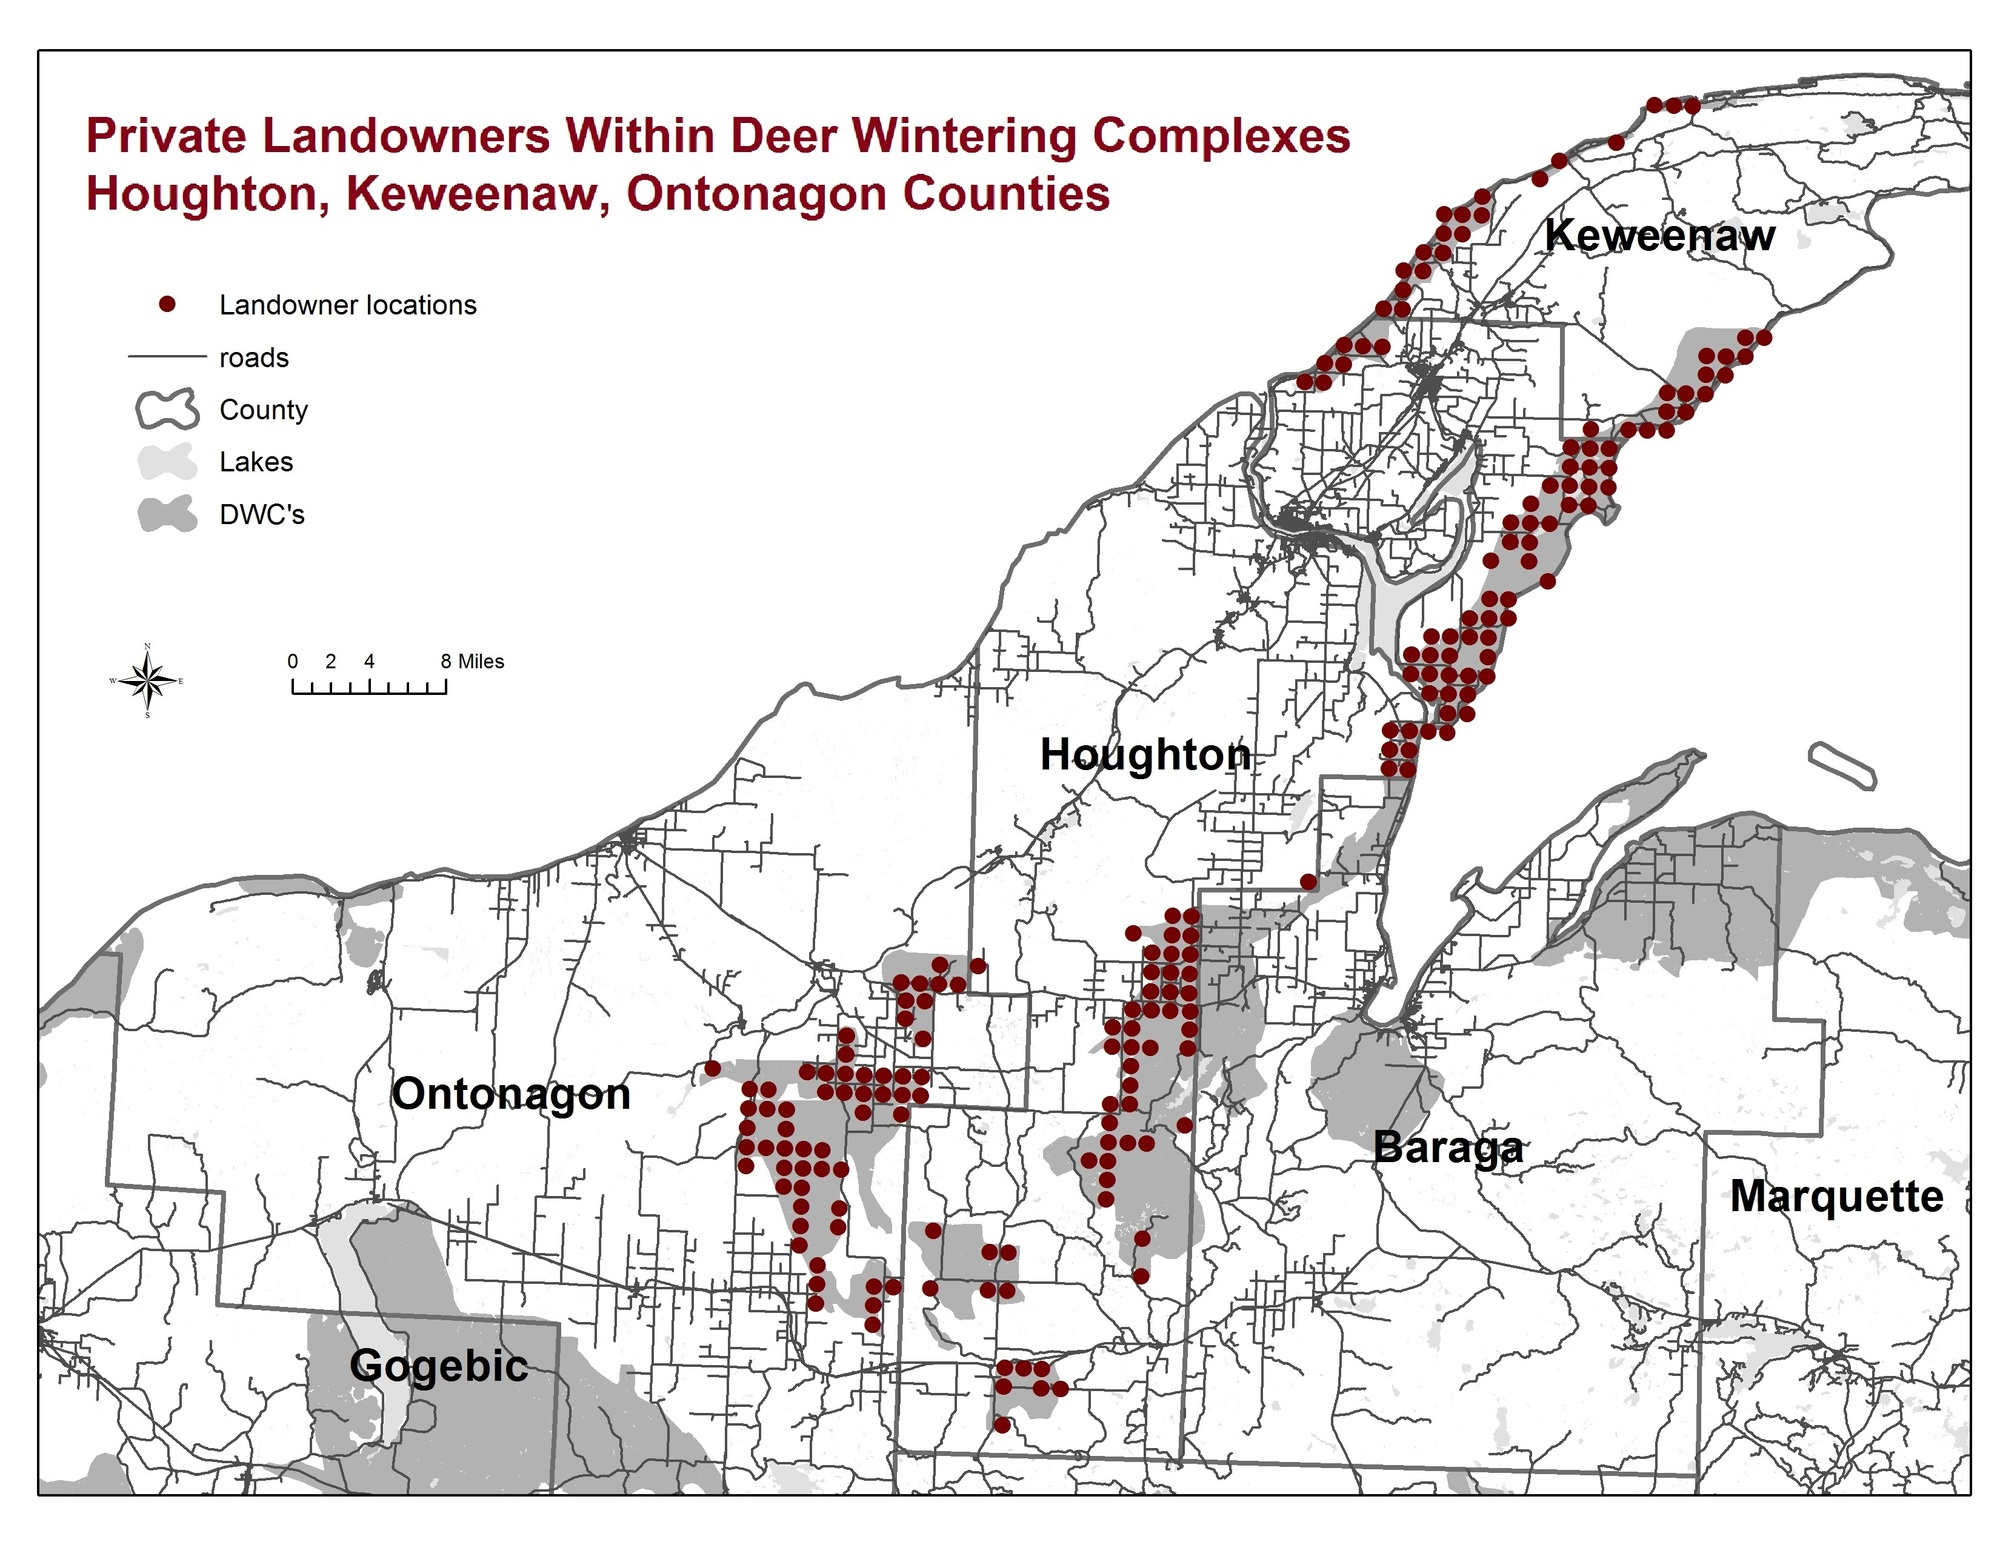 A map showing private landowners within deer wintering complexes in Houghton, Ontonagon and Keweenaw counties.